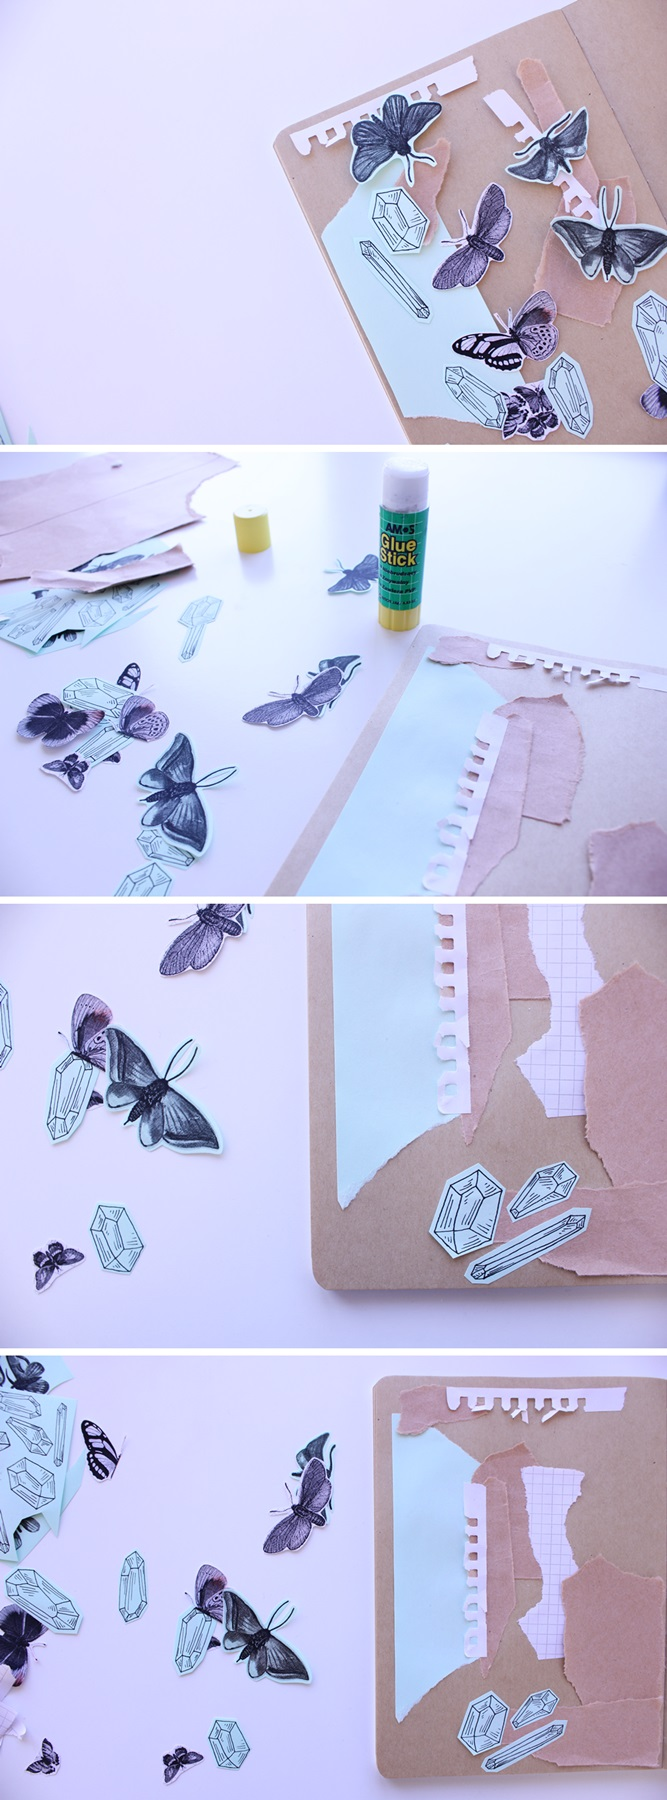 Creative activities. Making collage and printing on colored paper.